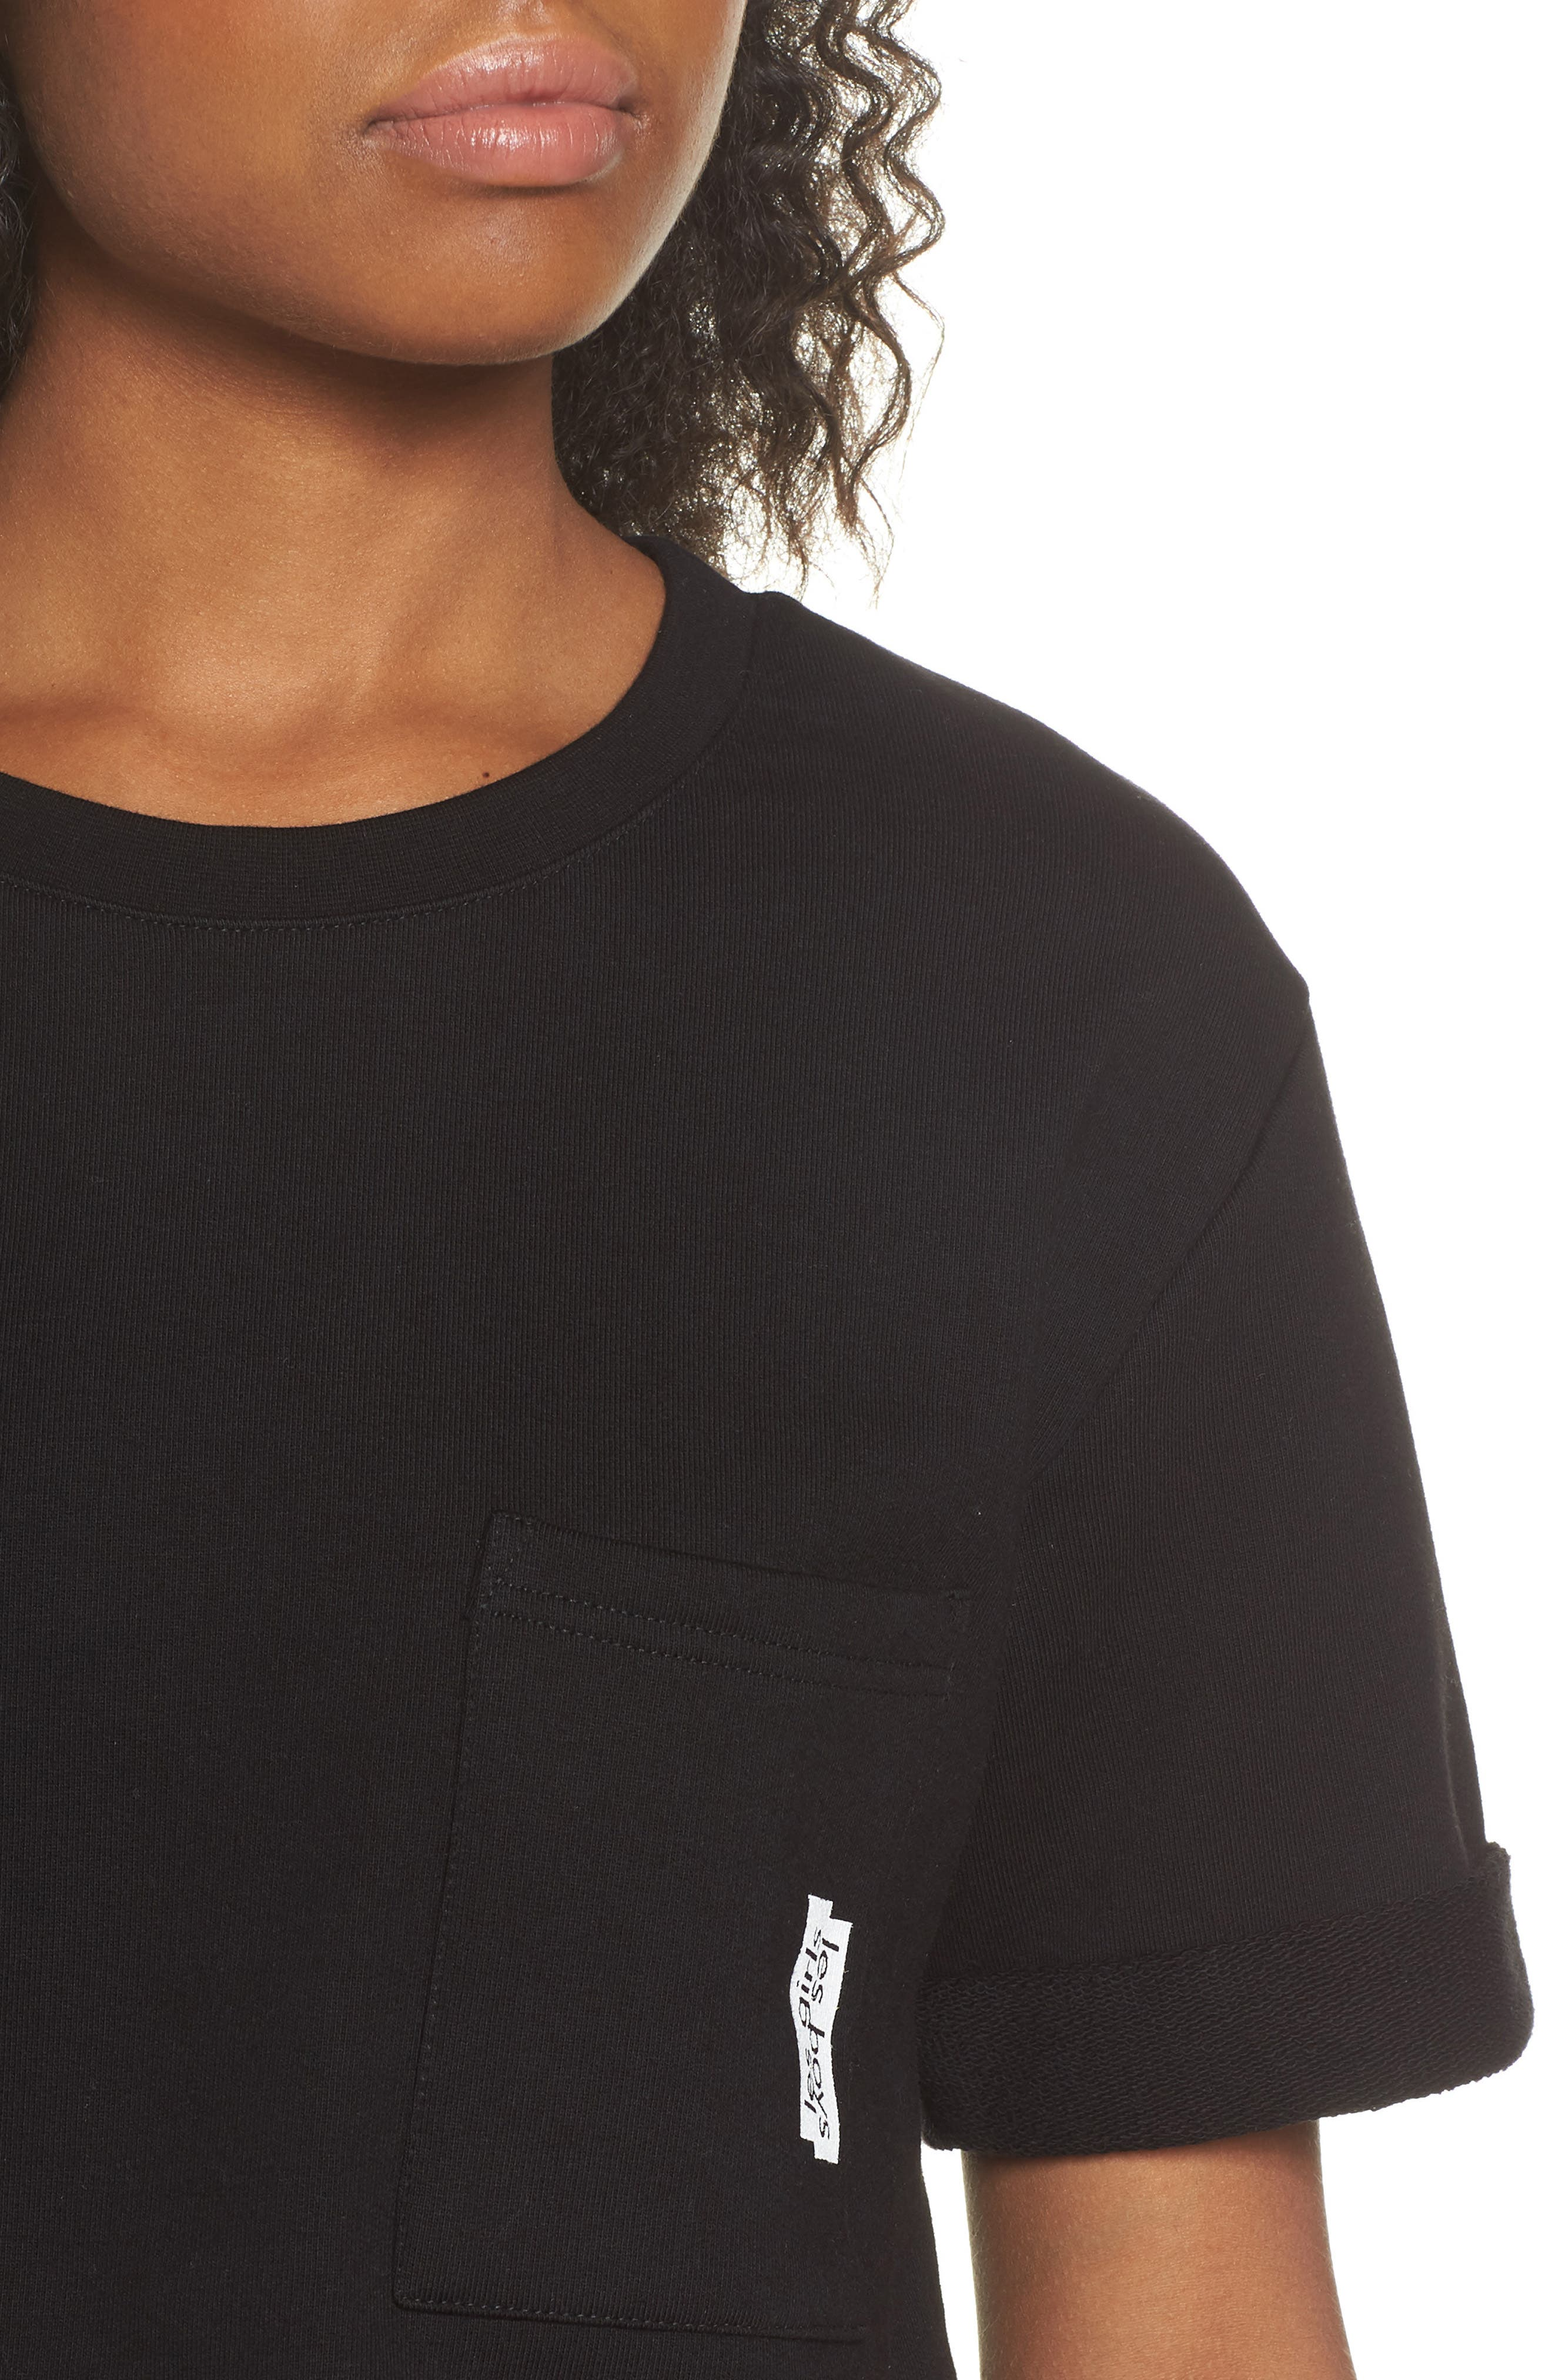 French Terry Crop Sweatshirt,                             Alternate thumbnail 4, color,                             003